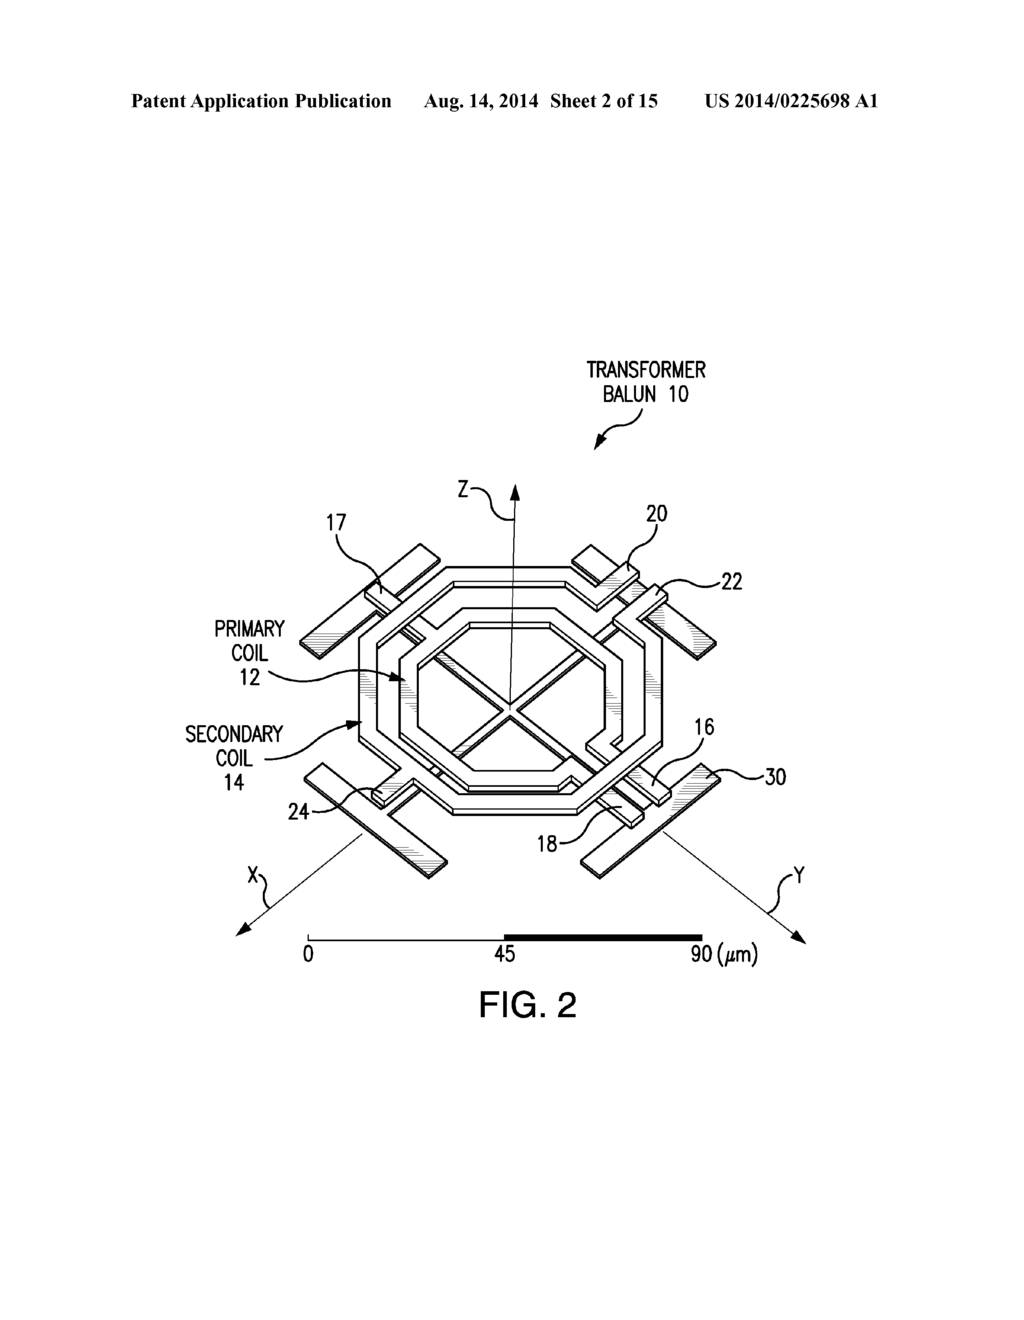 INTEGRATED TRANSFORMER BALUN WITH ENHANCED COMMON-MODE REJECTION FOR